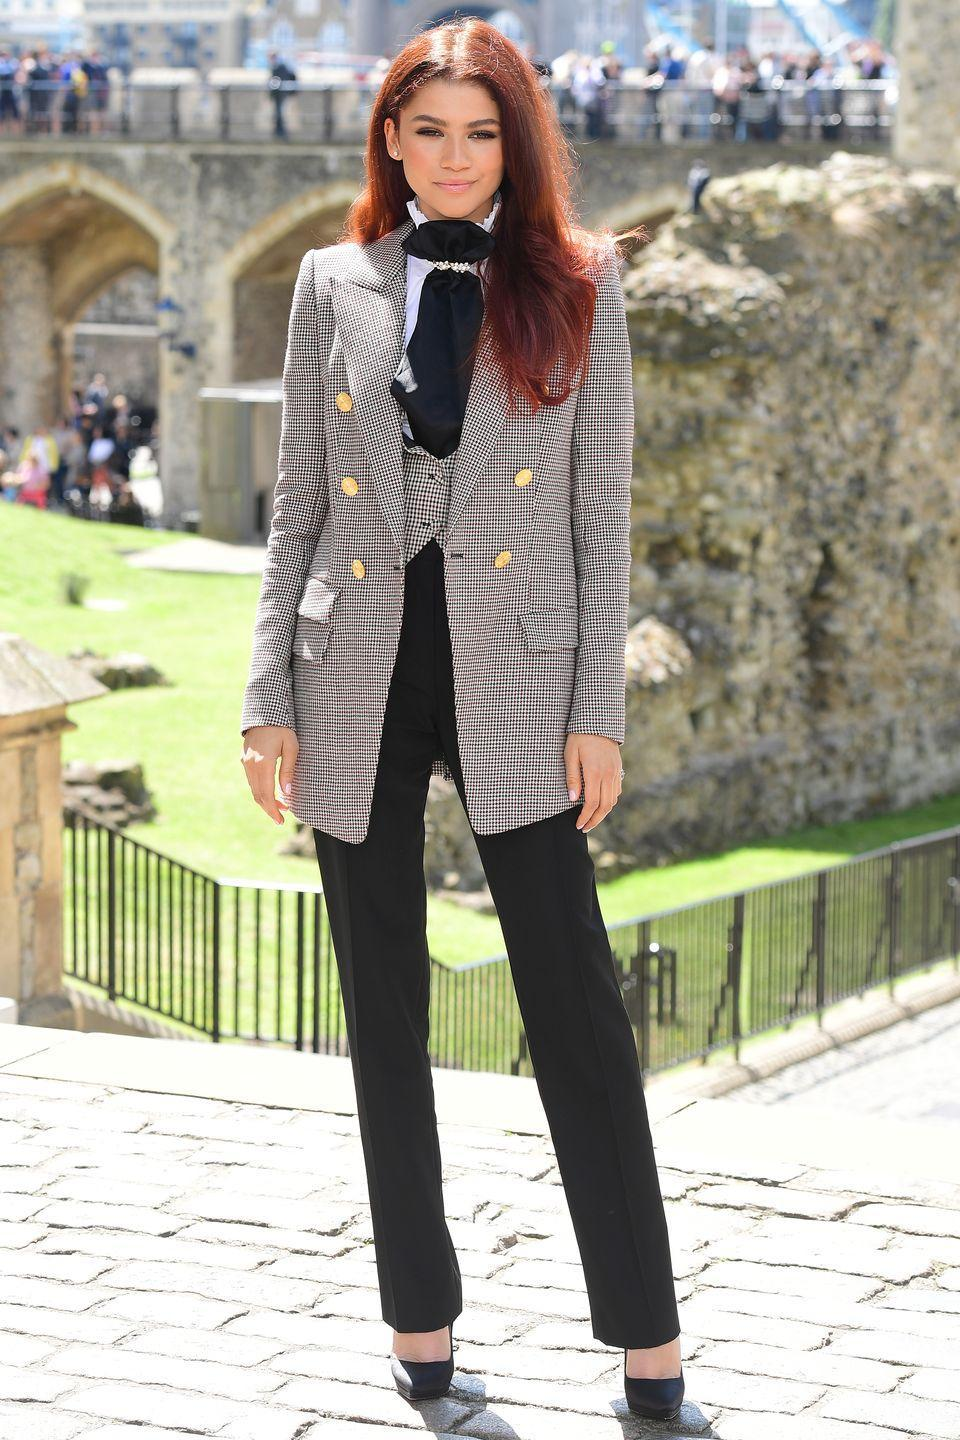 <p>Who: Zendaya </p><p>When: June 17, 2019</p><p>Wearing: Alexandre Vaulthier, Christian Louboutin heels</p><p>Why: Matching your waistcoat to your blazer is making a strong comeback, according to Zendaya at the <em>Spider-Man: Far From Home </em>photocall in London, England. Get ready for the return of '70s prep!</p>